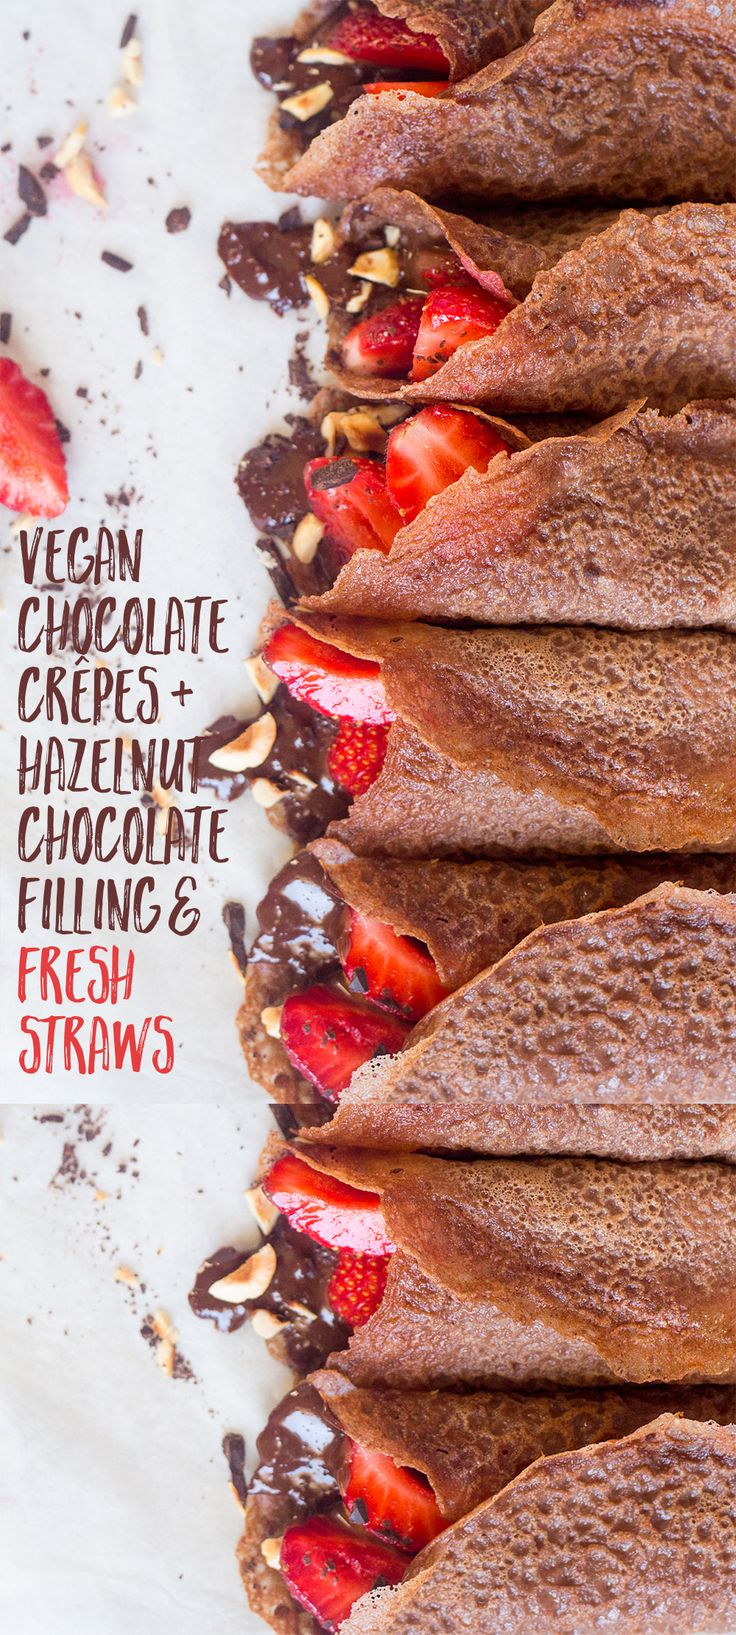 Vegan Chocolate Crêpes with Hazelnut Chocolate Filling and Fresh Strawberries…